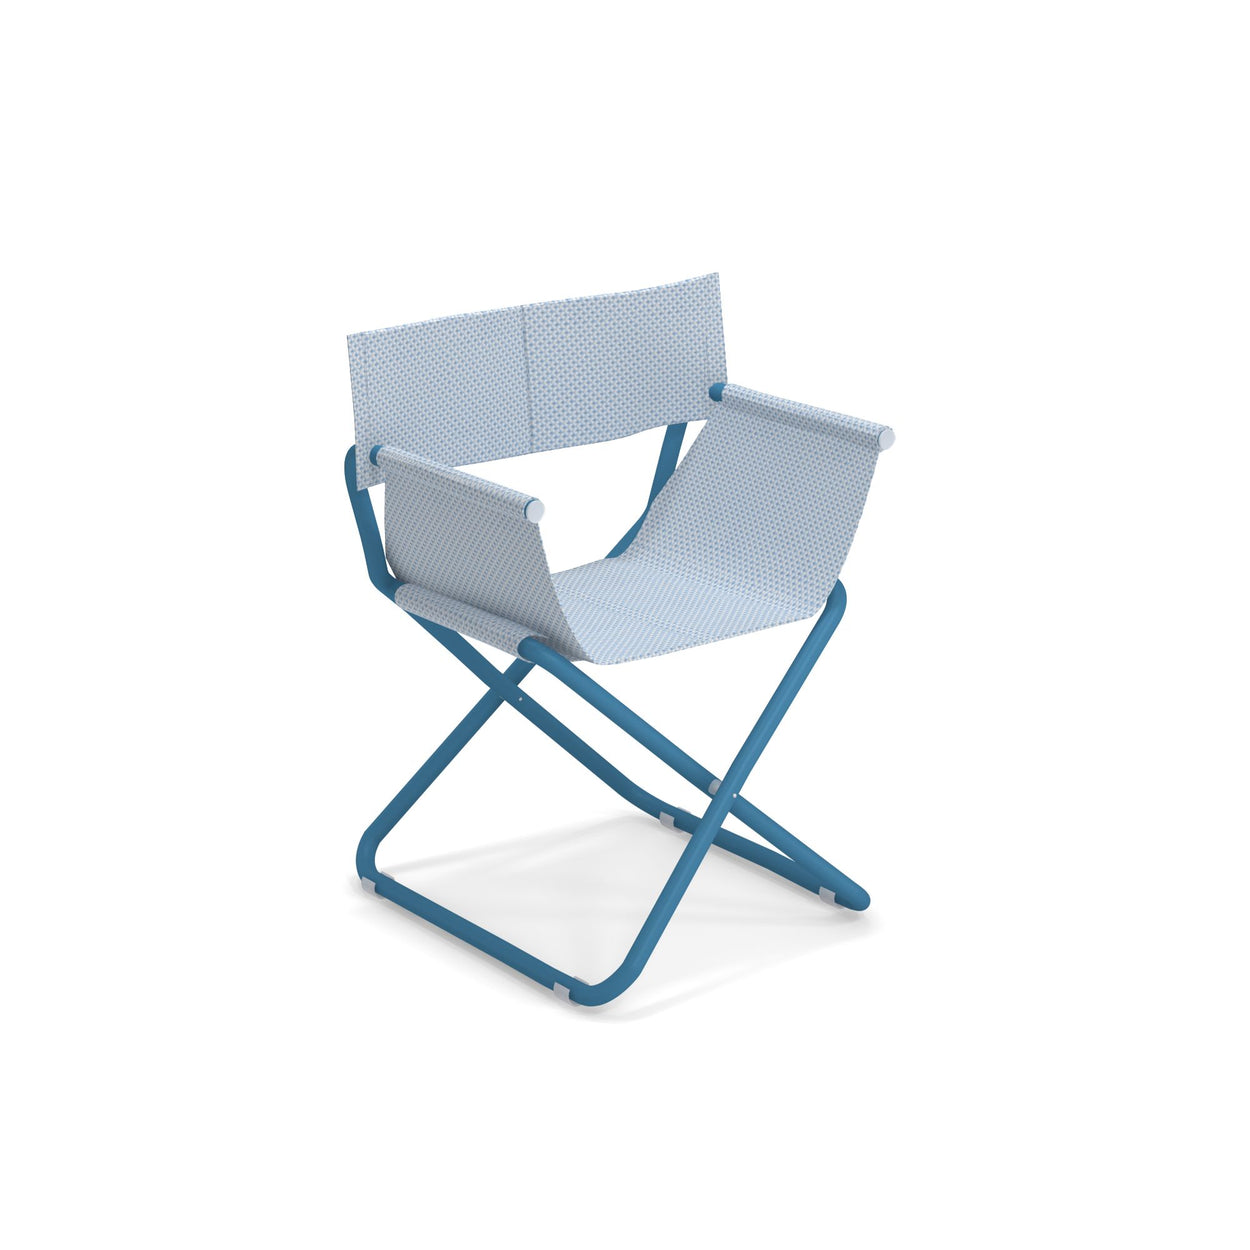 Snooze folding armchair